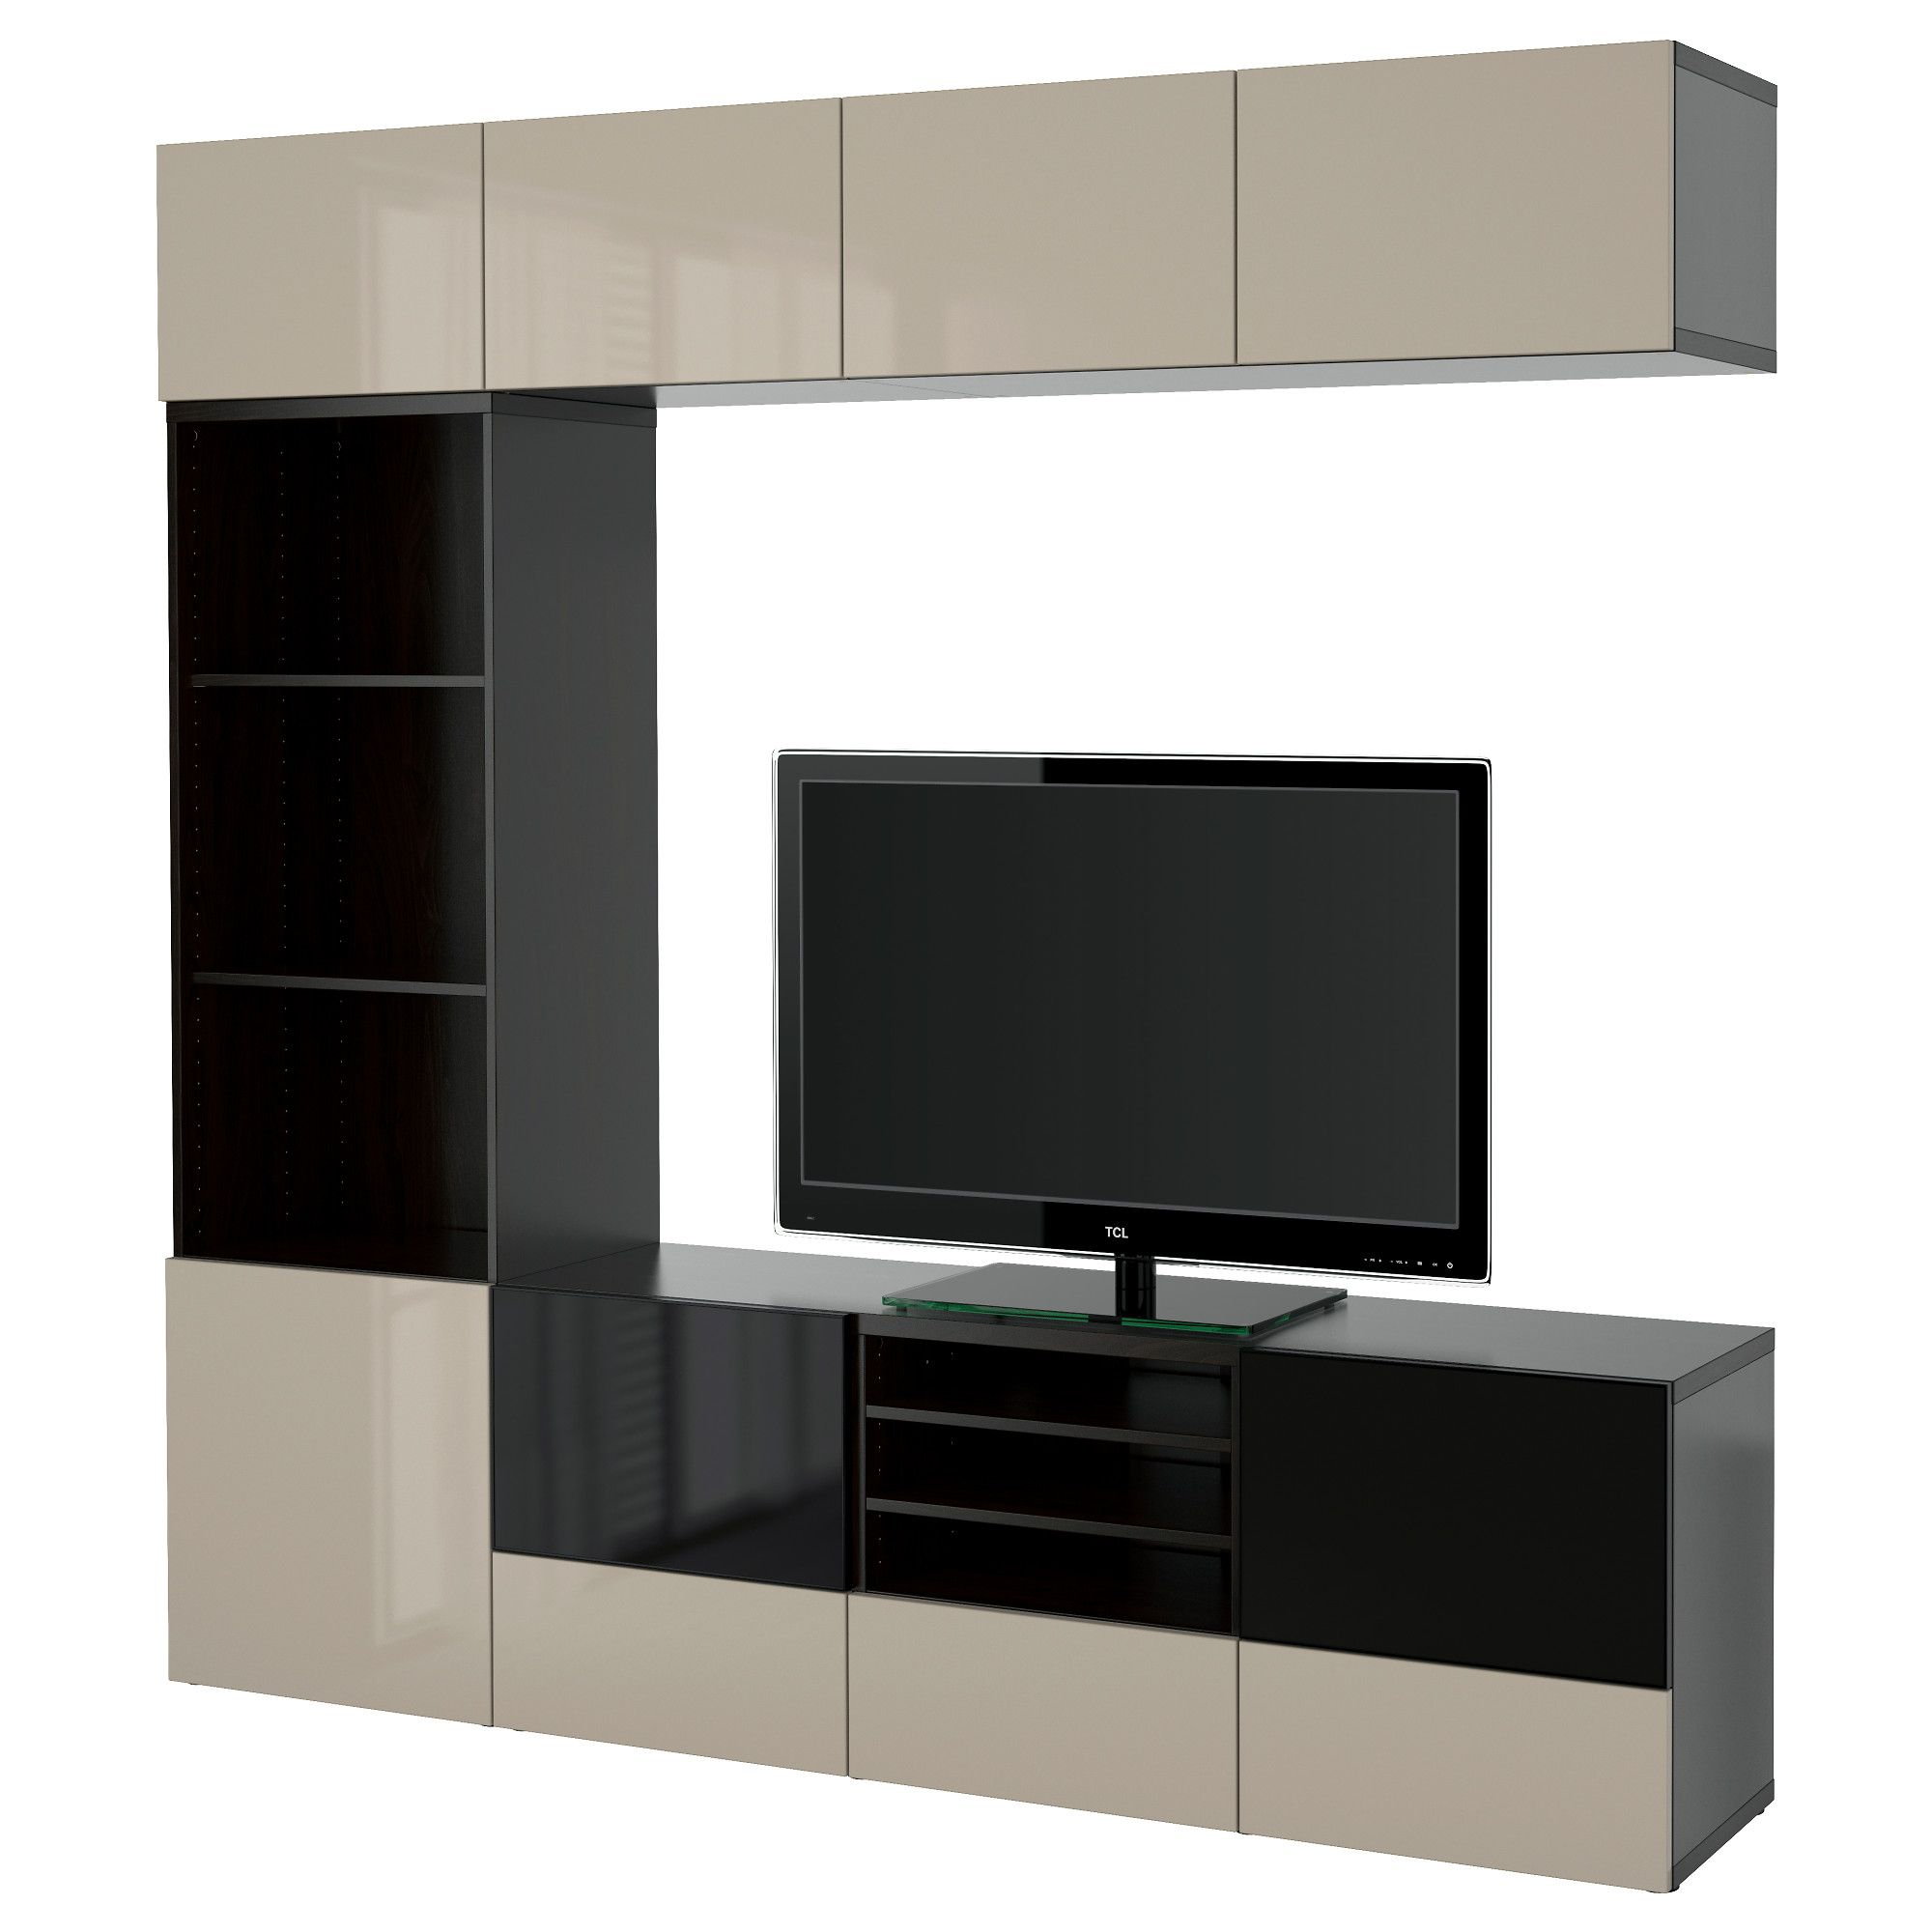 Furniture Home Furnishings Find Your Inspiration Ikea Lack Tv Stand Tv Stand With Storage Tv Storage